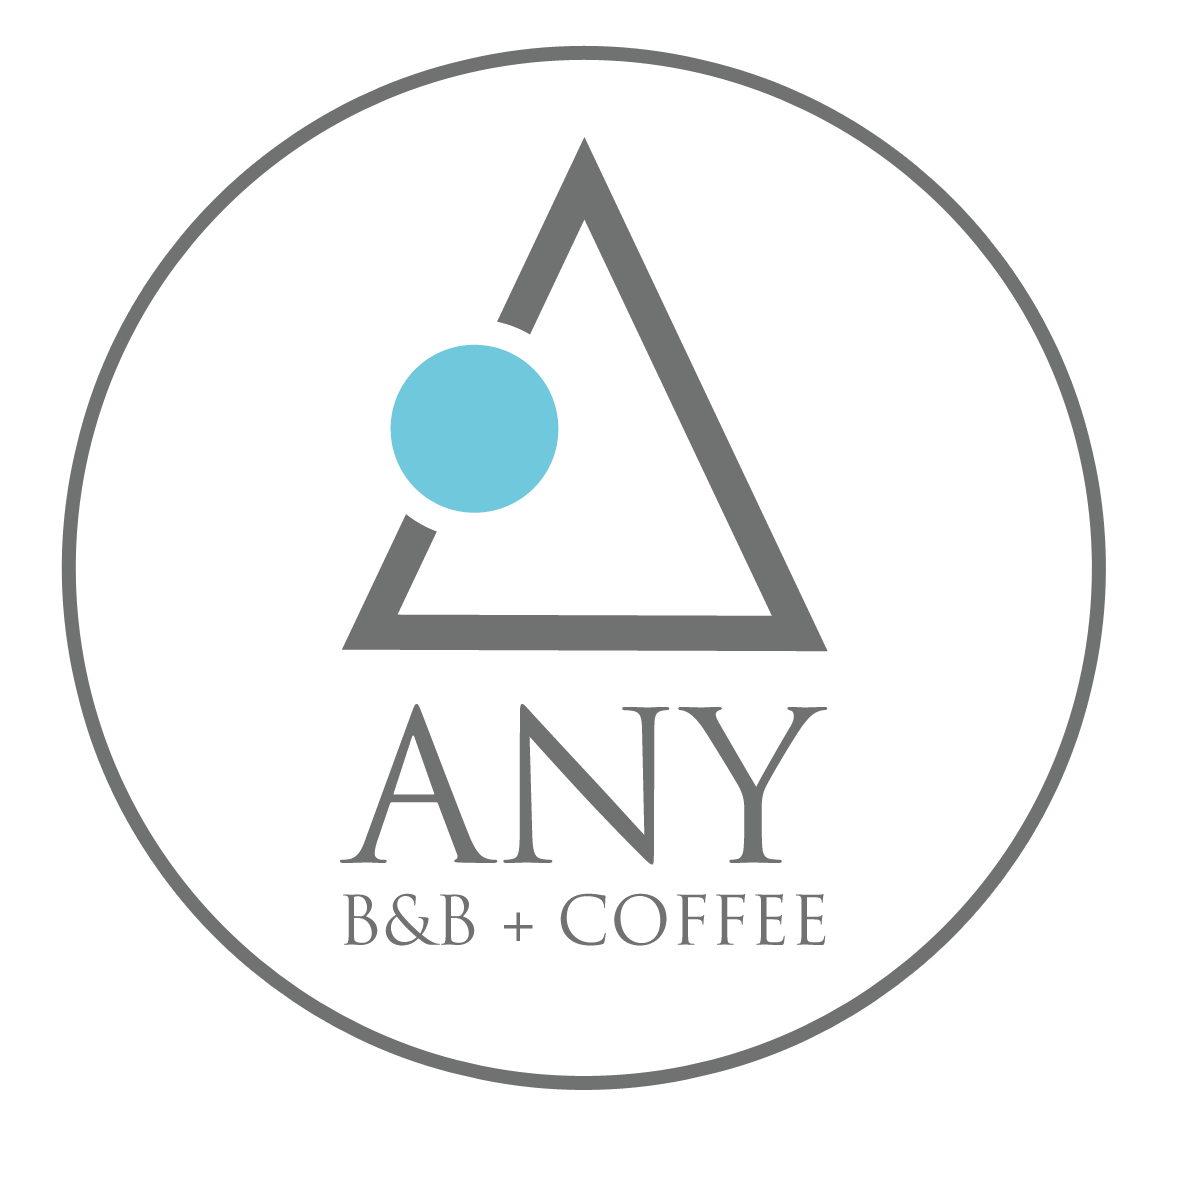 ANY B&B + COFFEE